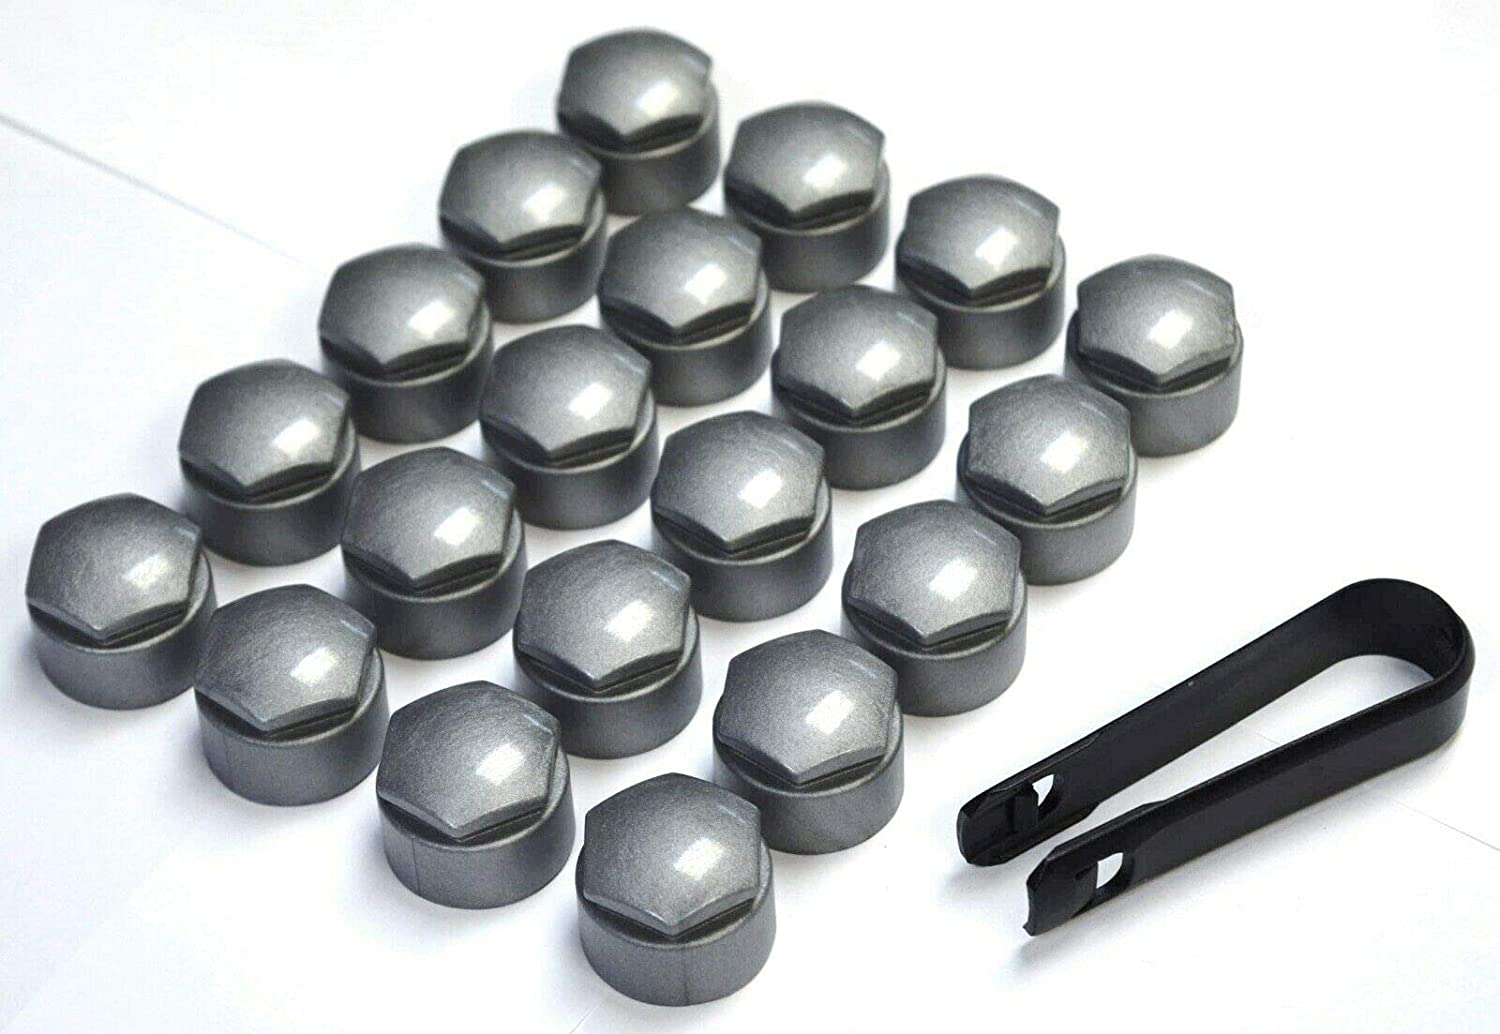 Welcomefee 20 Pieces Universal Chrome Car Wheel Bolt Nut Head Cap Covers 17mm Plastic Hexagonal Protectors Hex plus Removal Tool